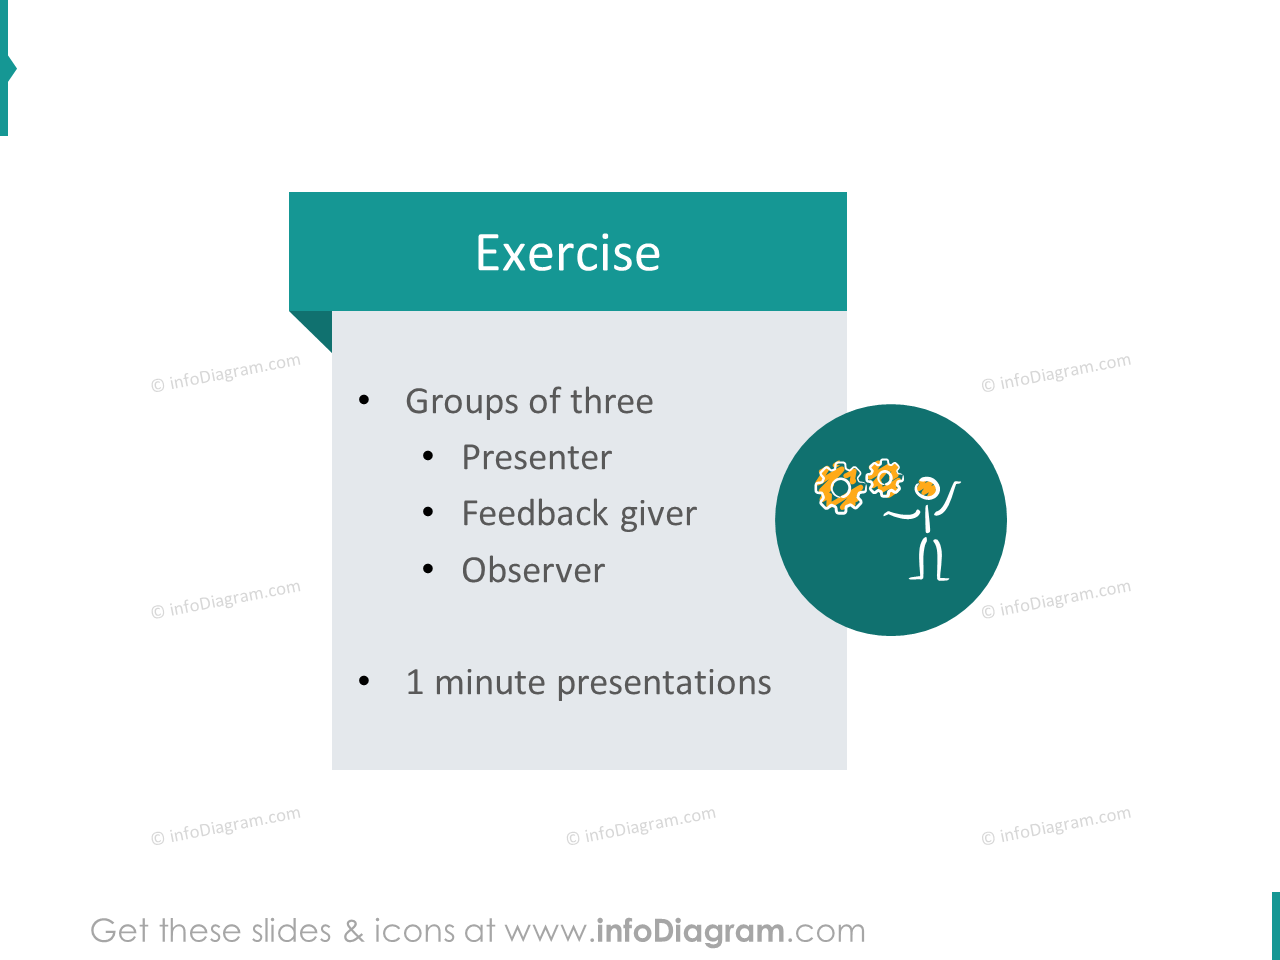 feedback training exercise icon powerpoint clipart